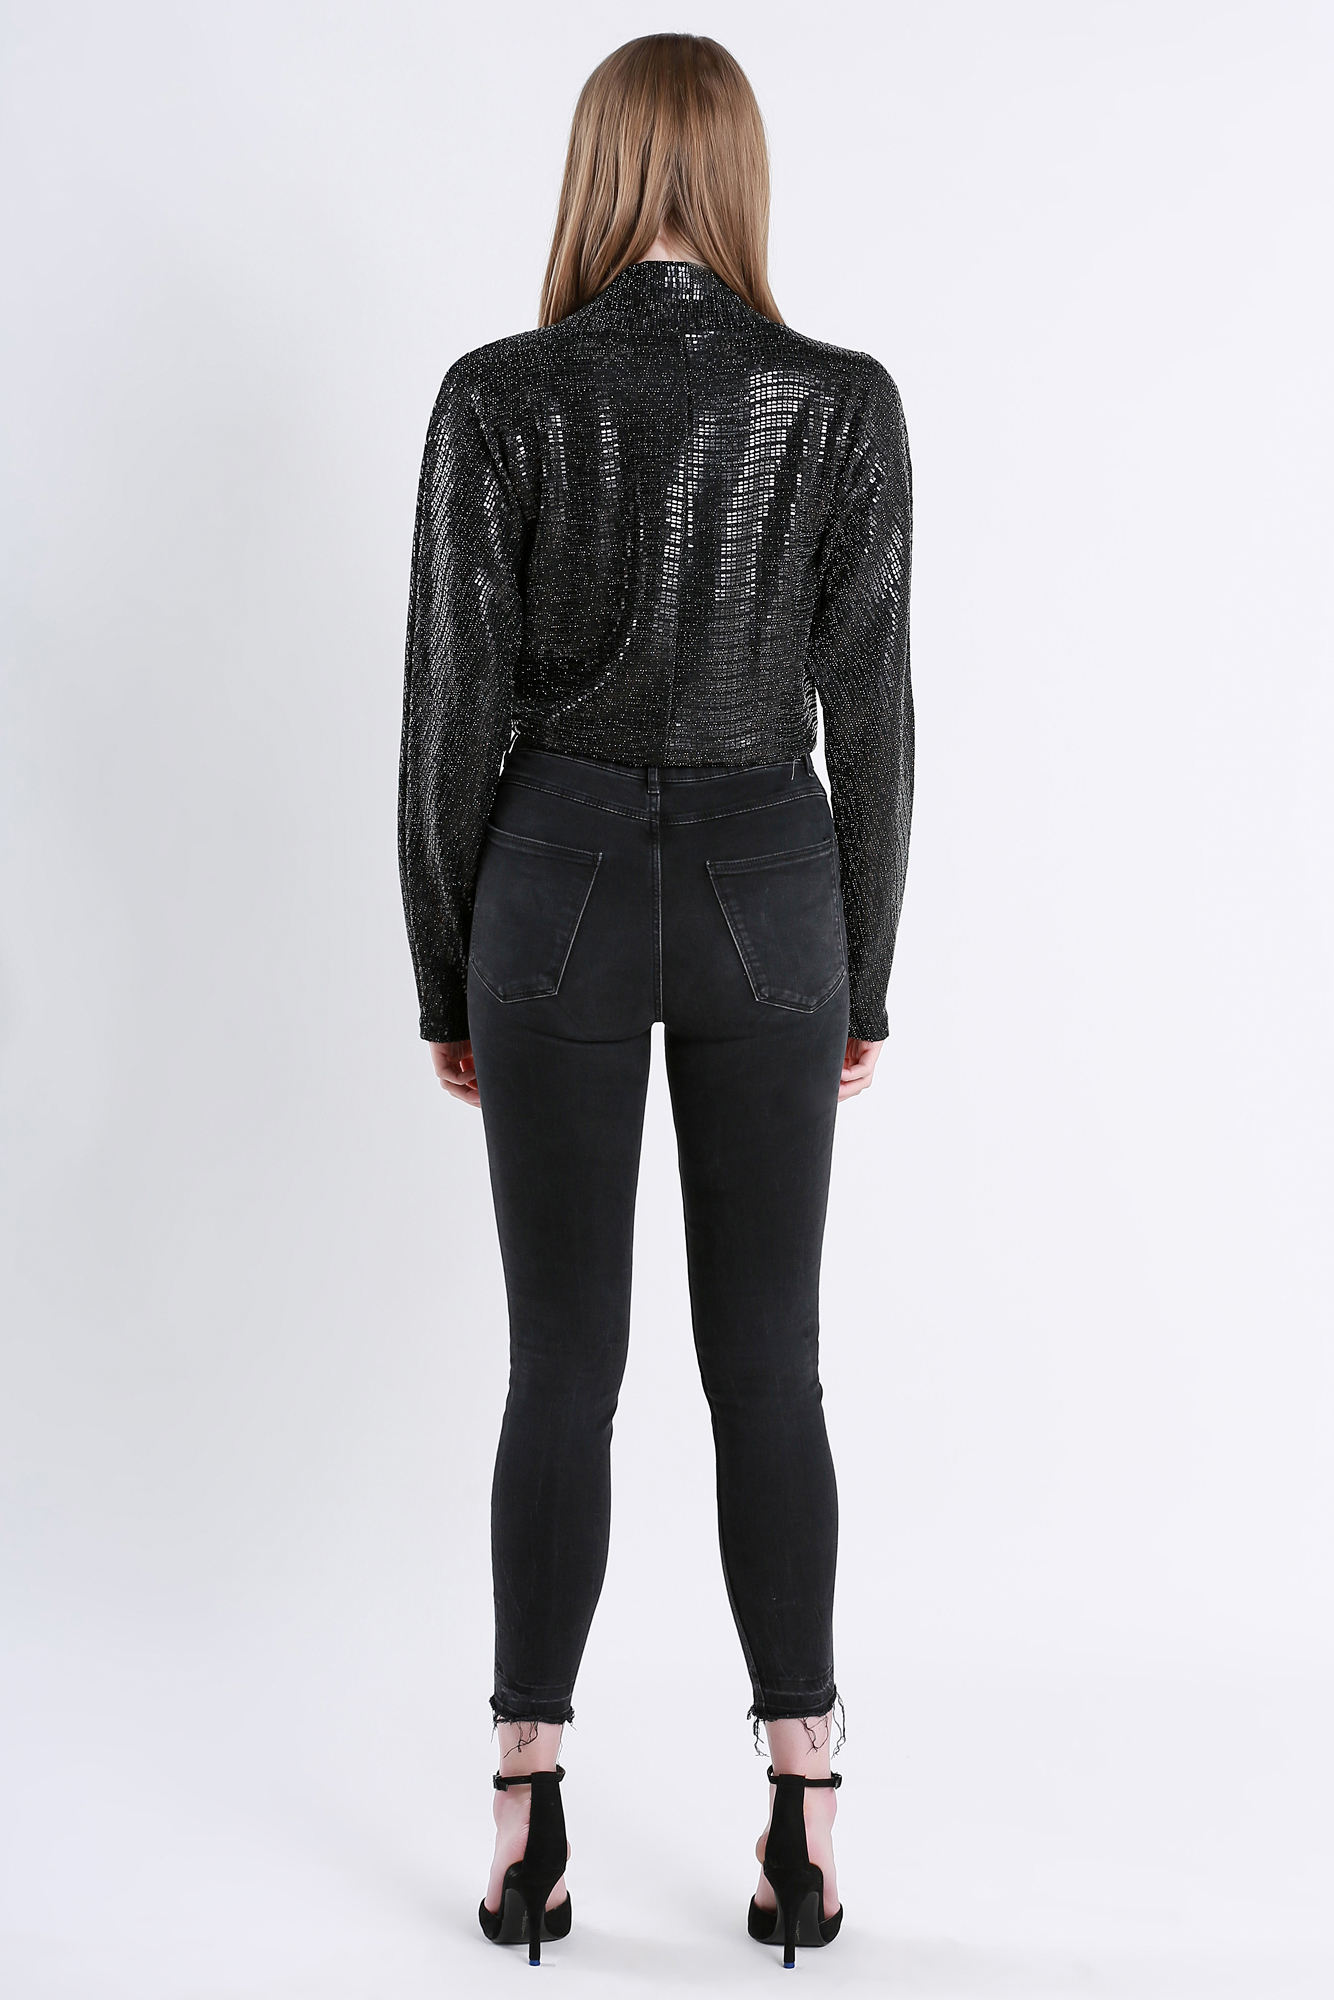 Sexy Blouses J H Fashion Design Black Blouse Sequin Long Sleeve Sexy Deep V Body Suit